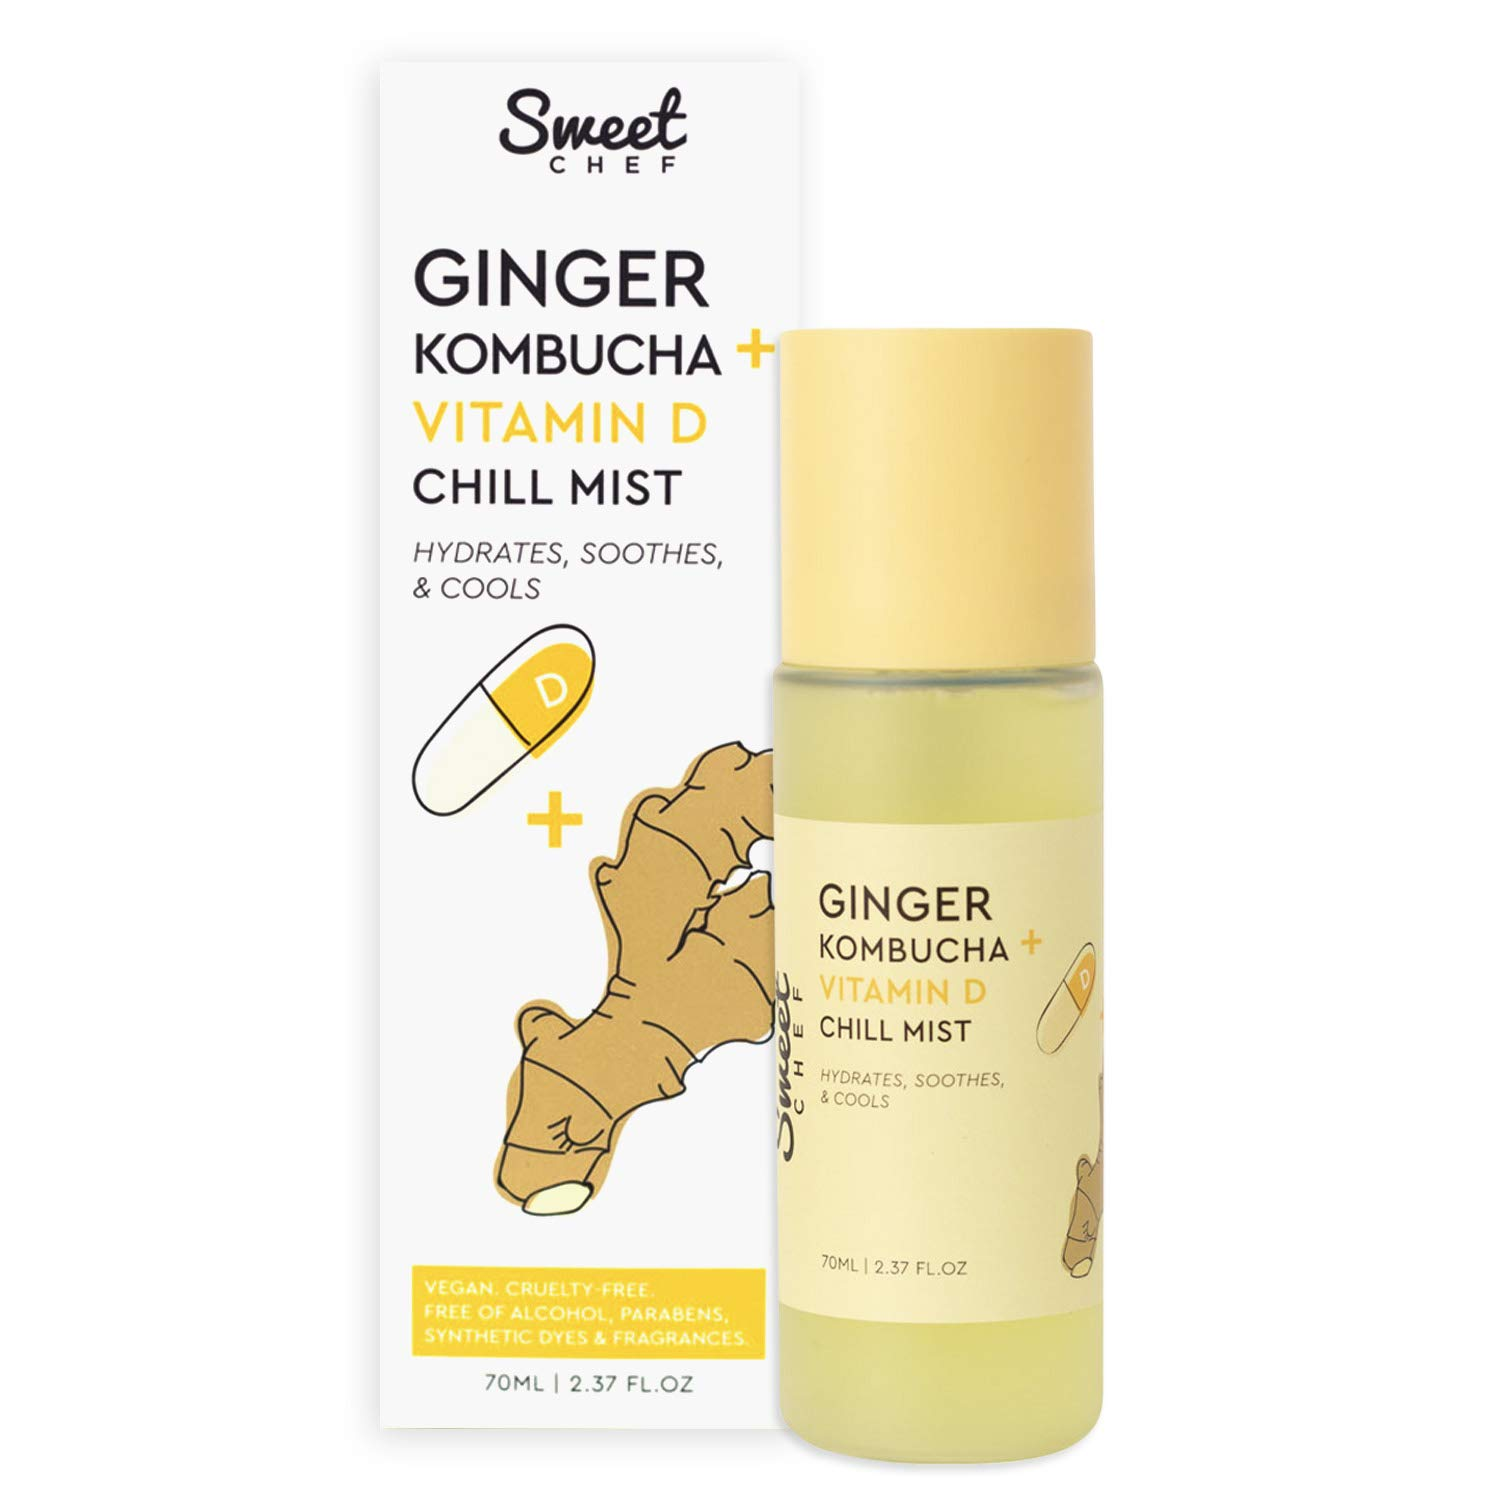 Sweet Chef Ginger Kombucha + Vitamin D Chill Mist - Antioxidant-Rich Hydrating Face Mist - Fights Free Radical Damage, Soothes Skin + Visibly Boosts Radiance (70ml / 2.37 fl oz)